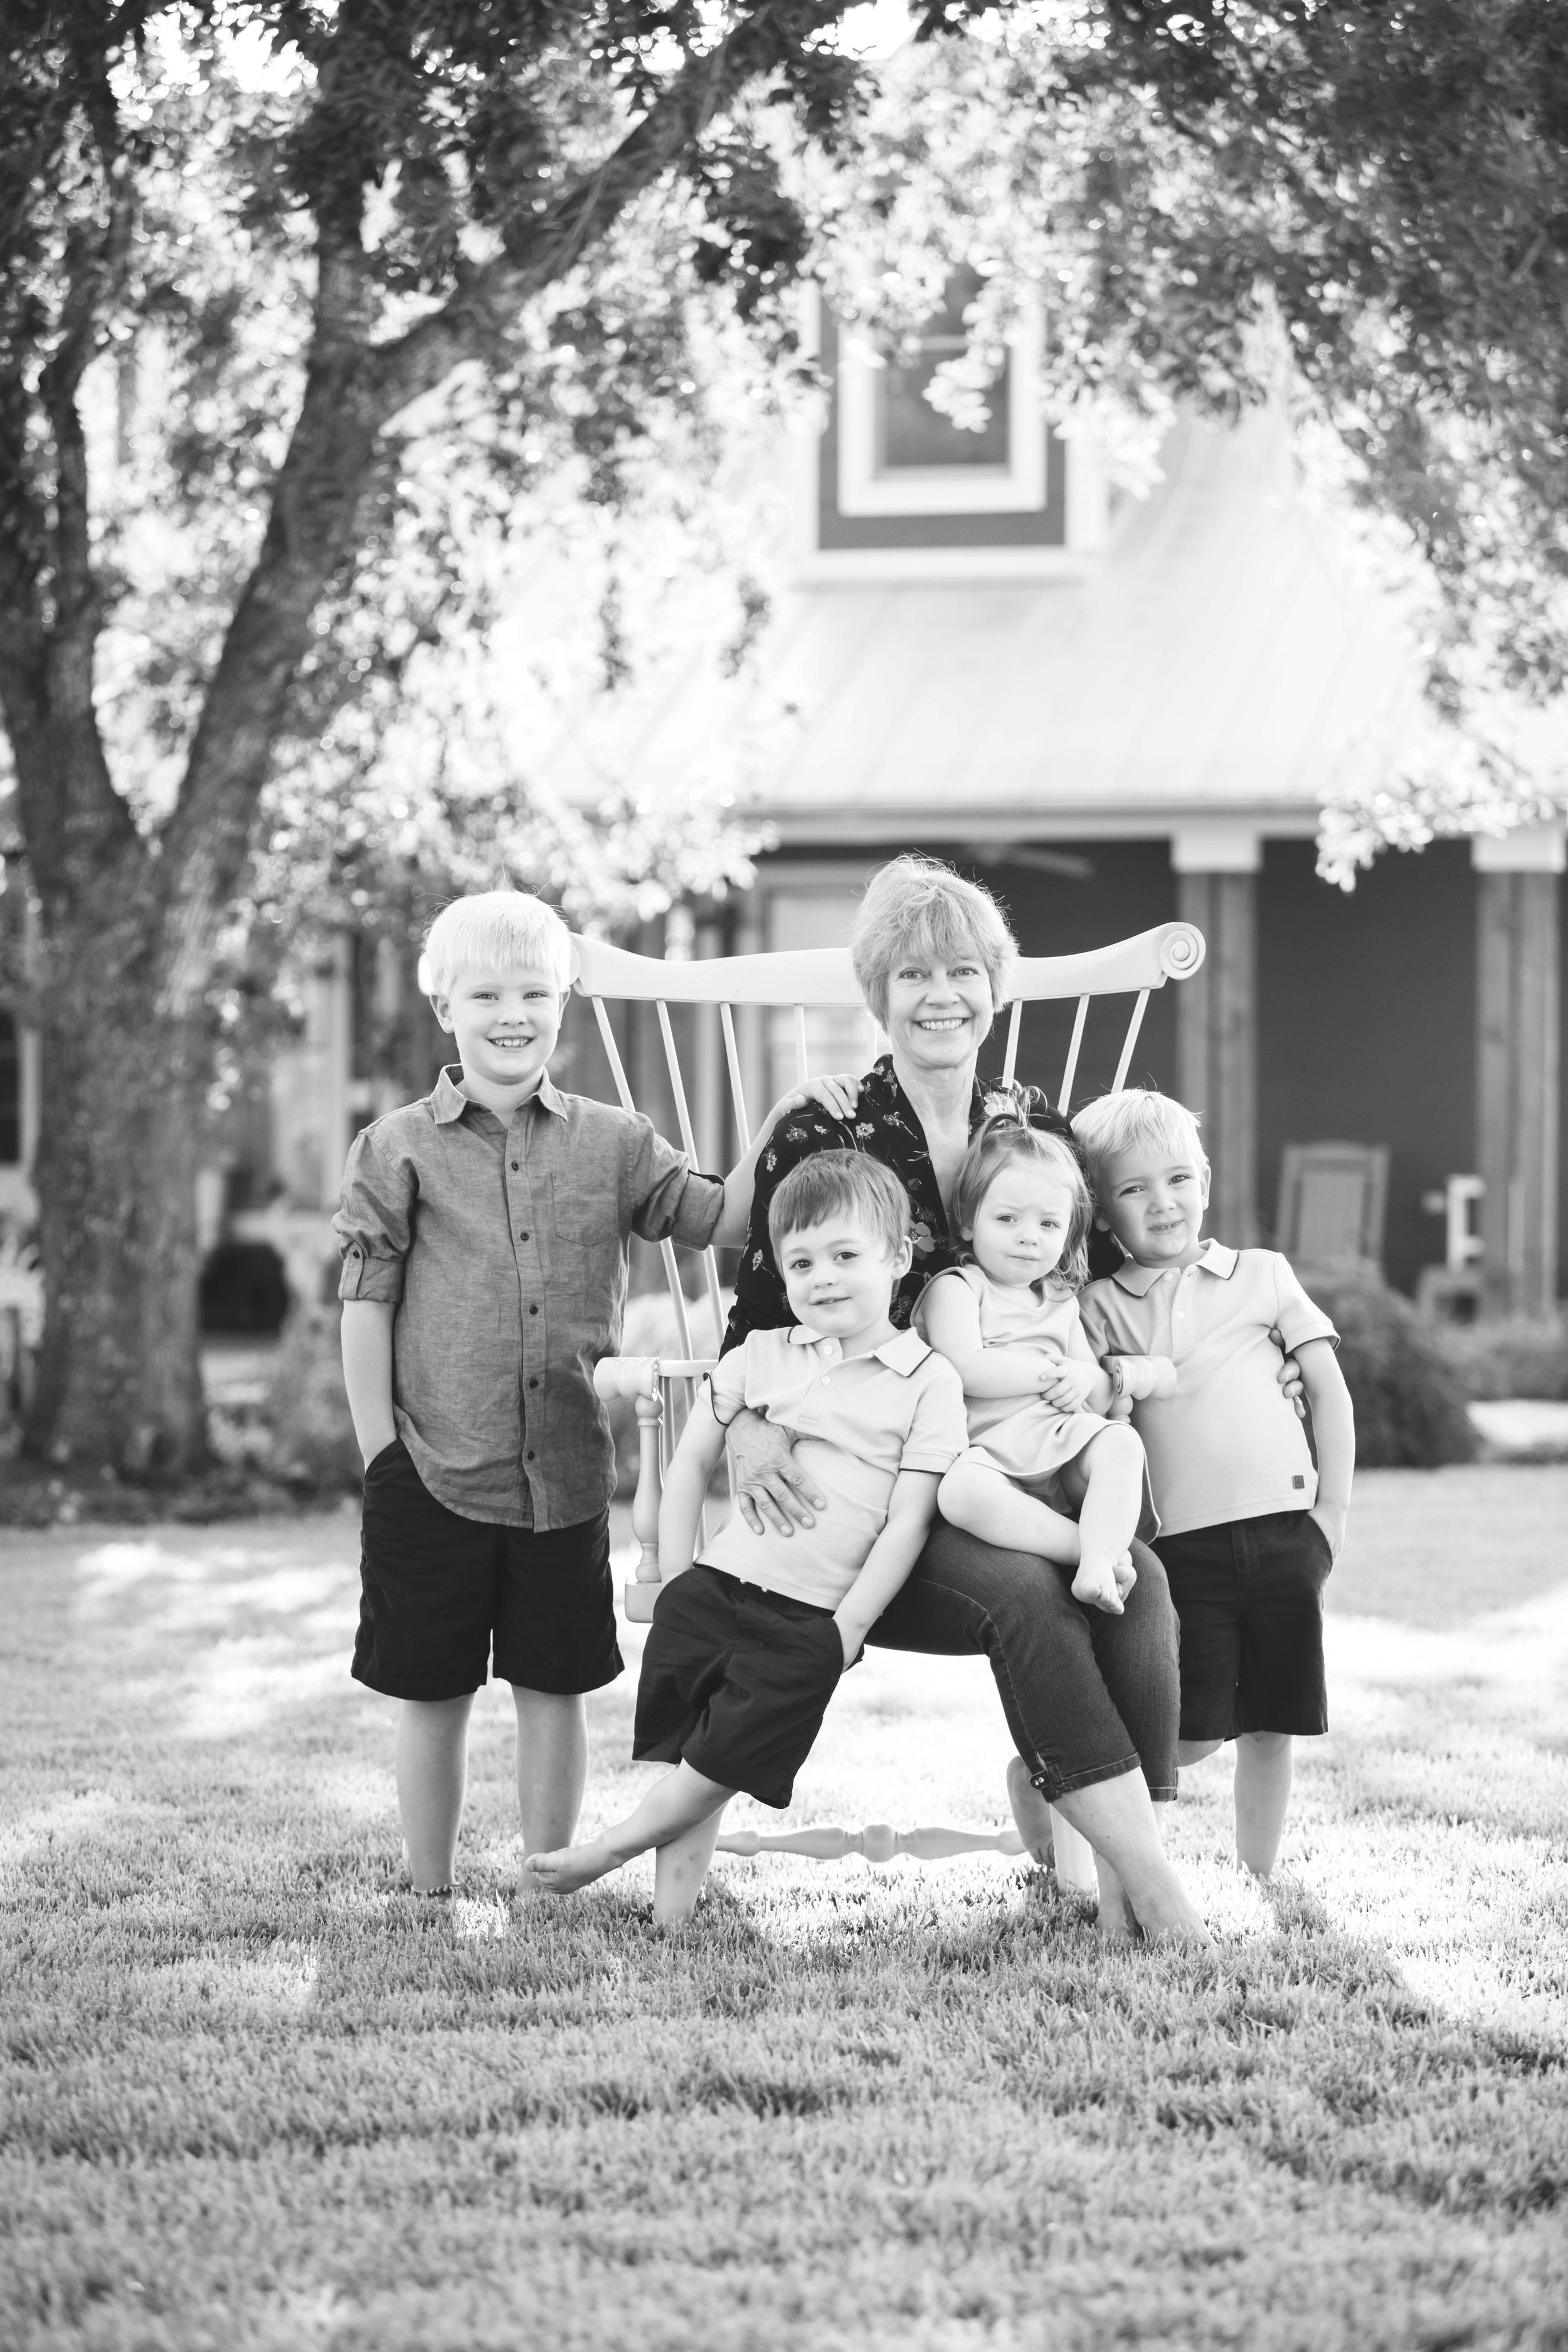 Marble_Falls_Family_Photographer_Farm_Jenna_Petty_04.jpg